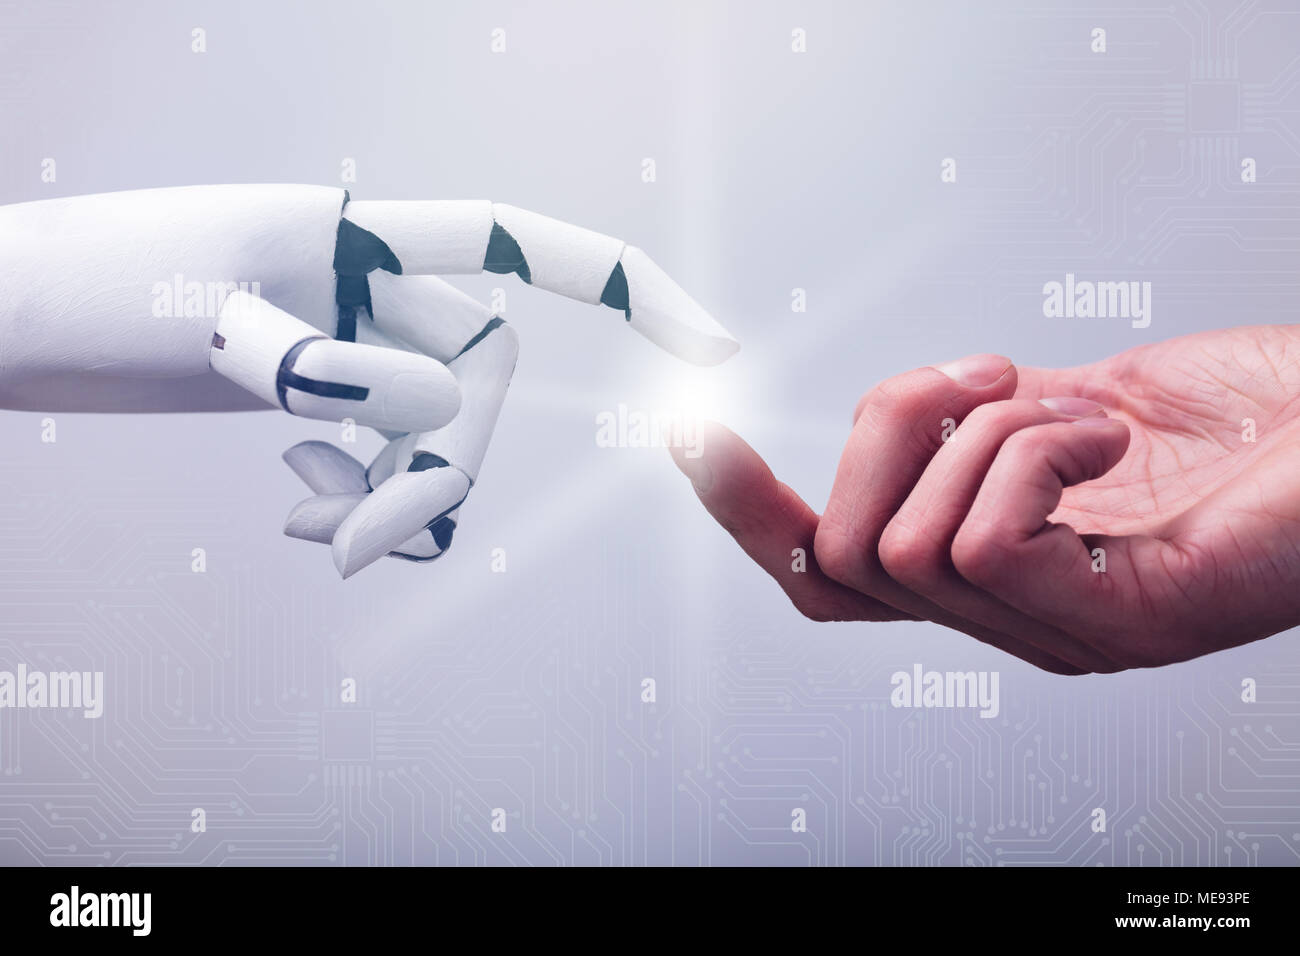 Robot Touching Human Finger Against Technology Background - Stock Image